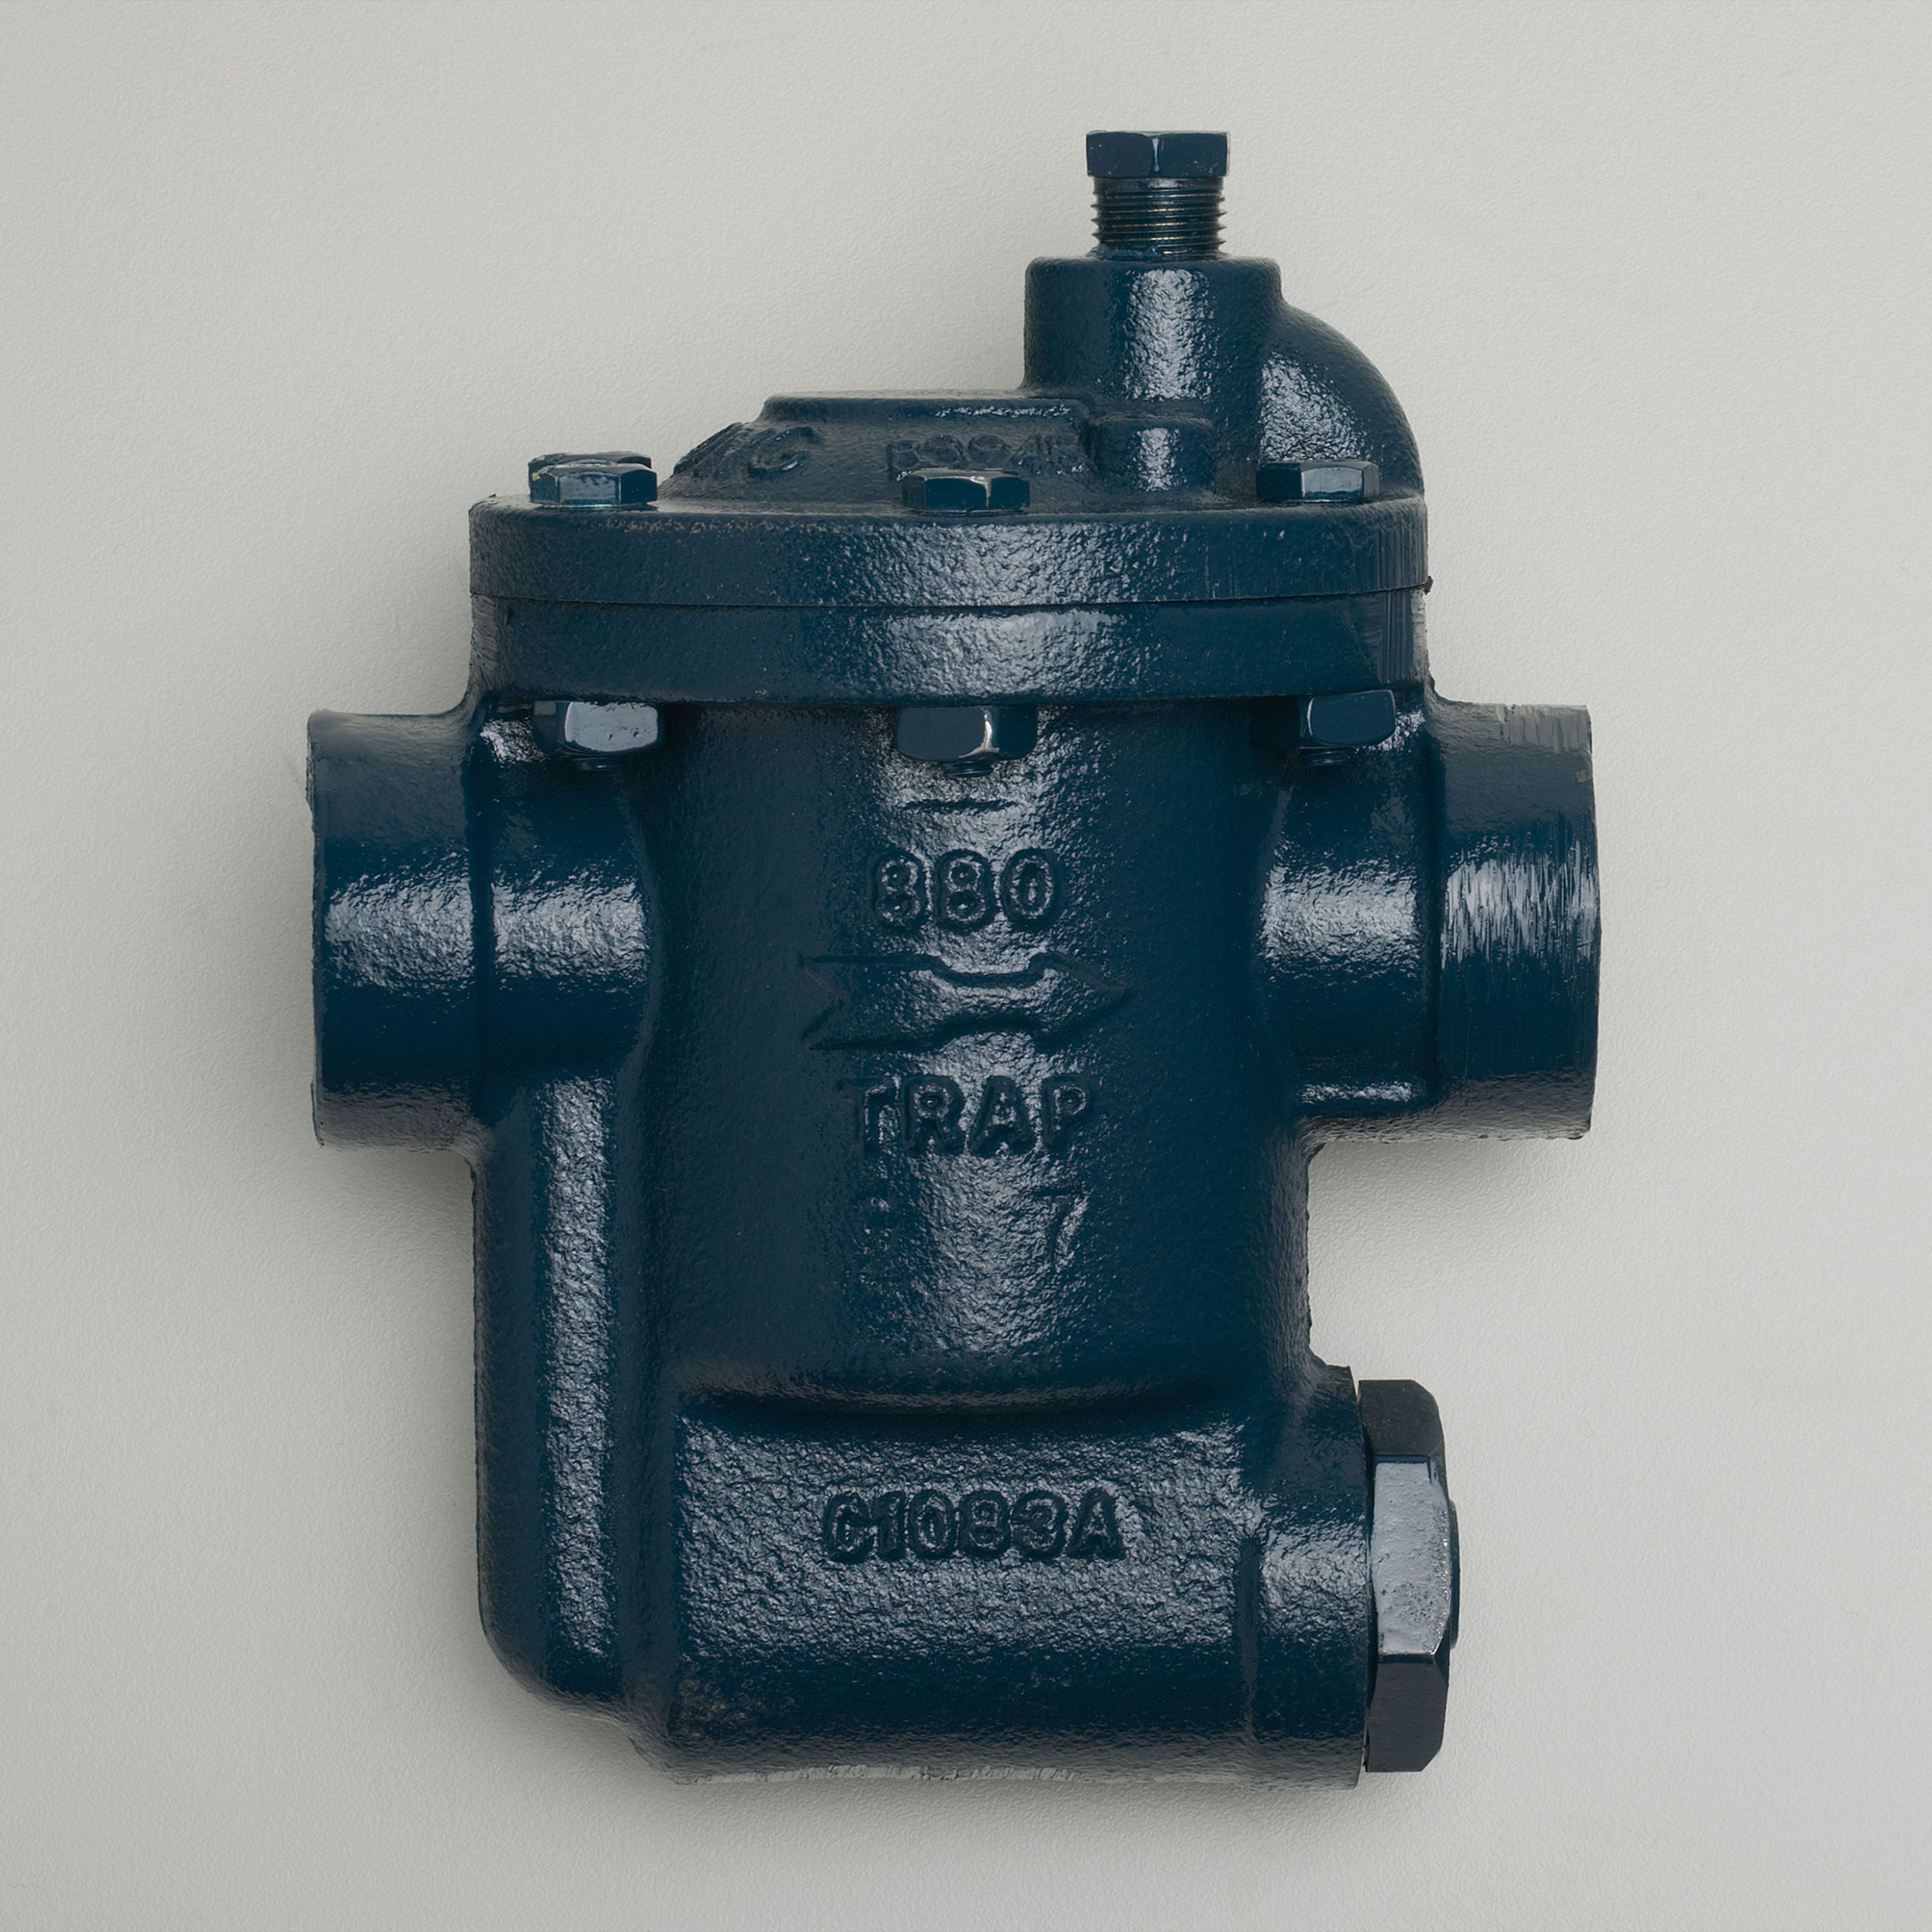 Armstrong International 880 Series Inverted Bucket Steam Traps